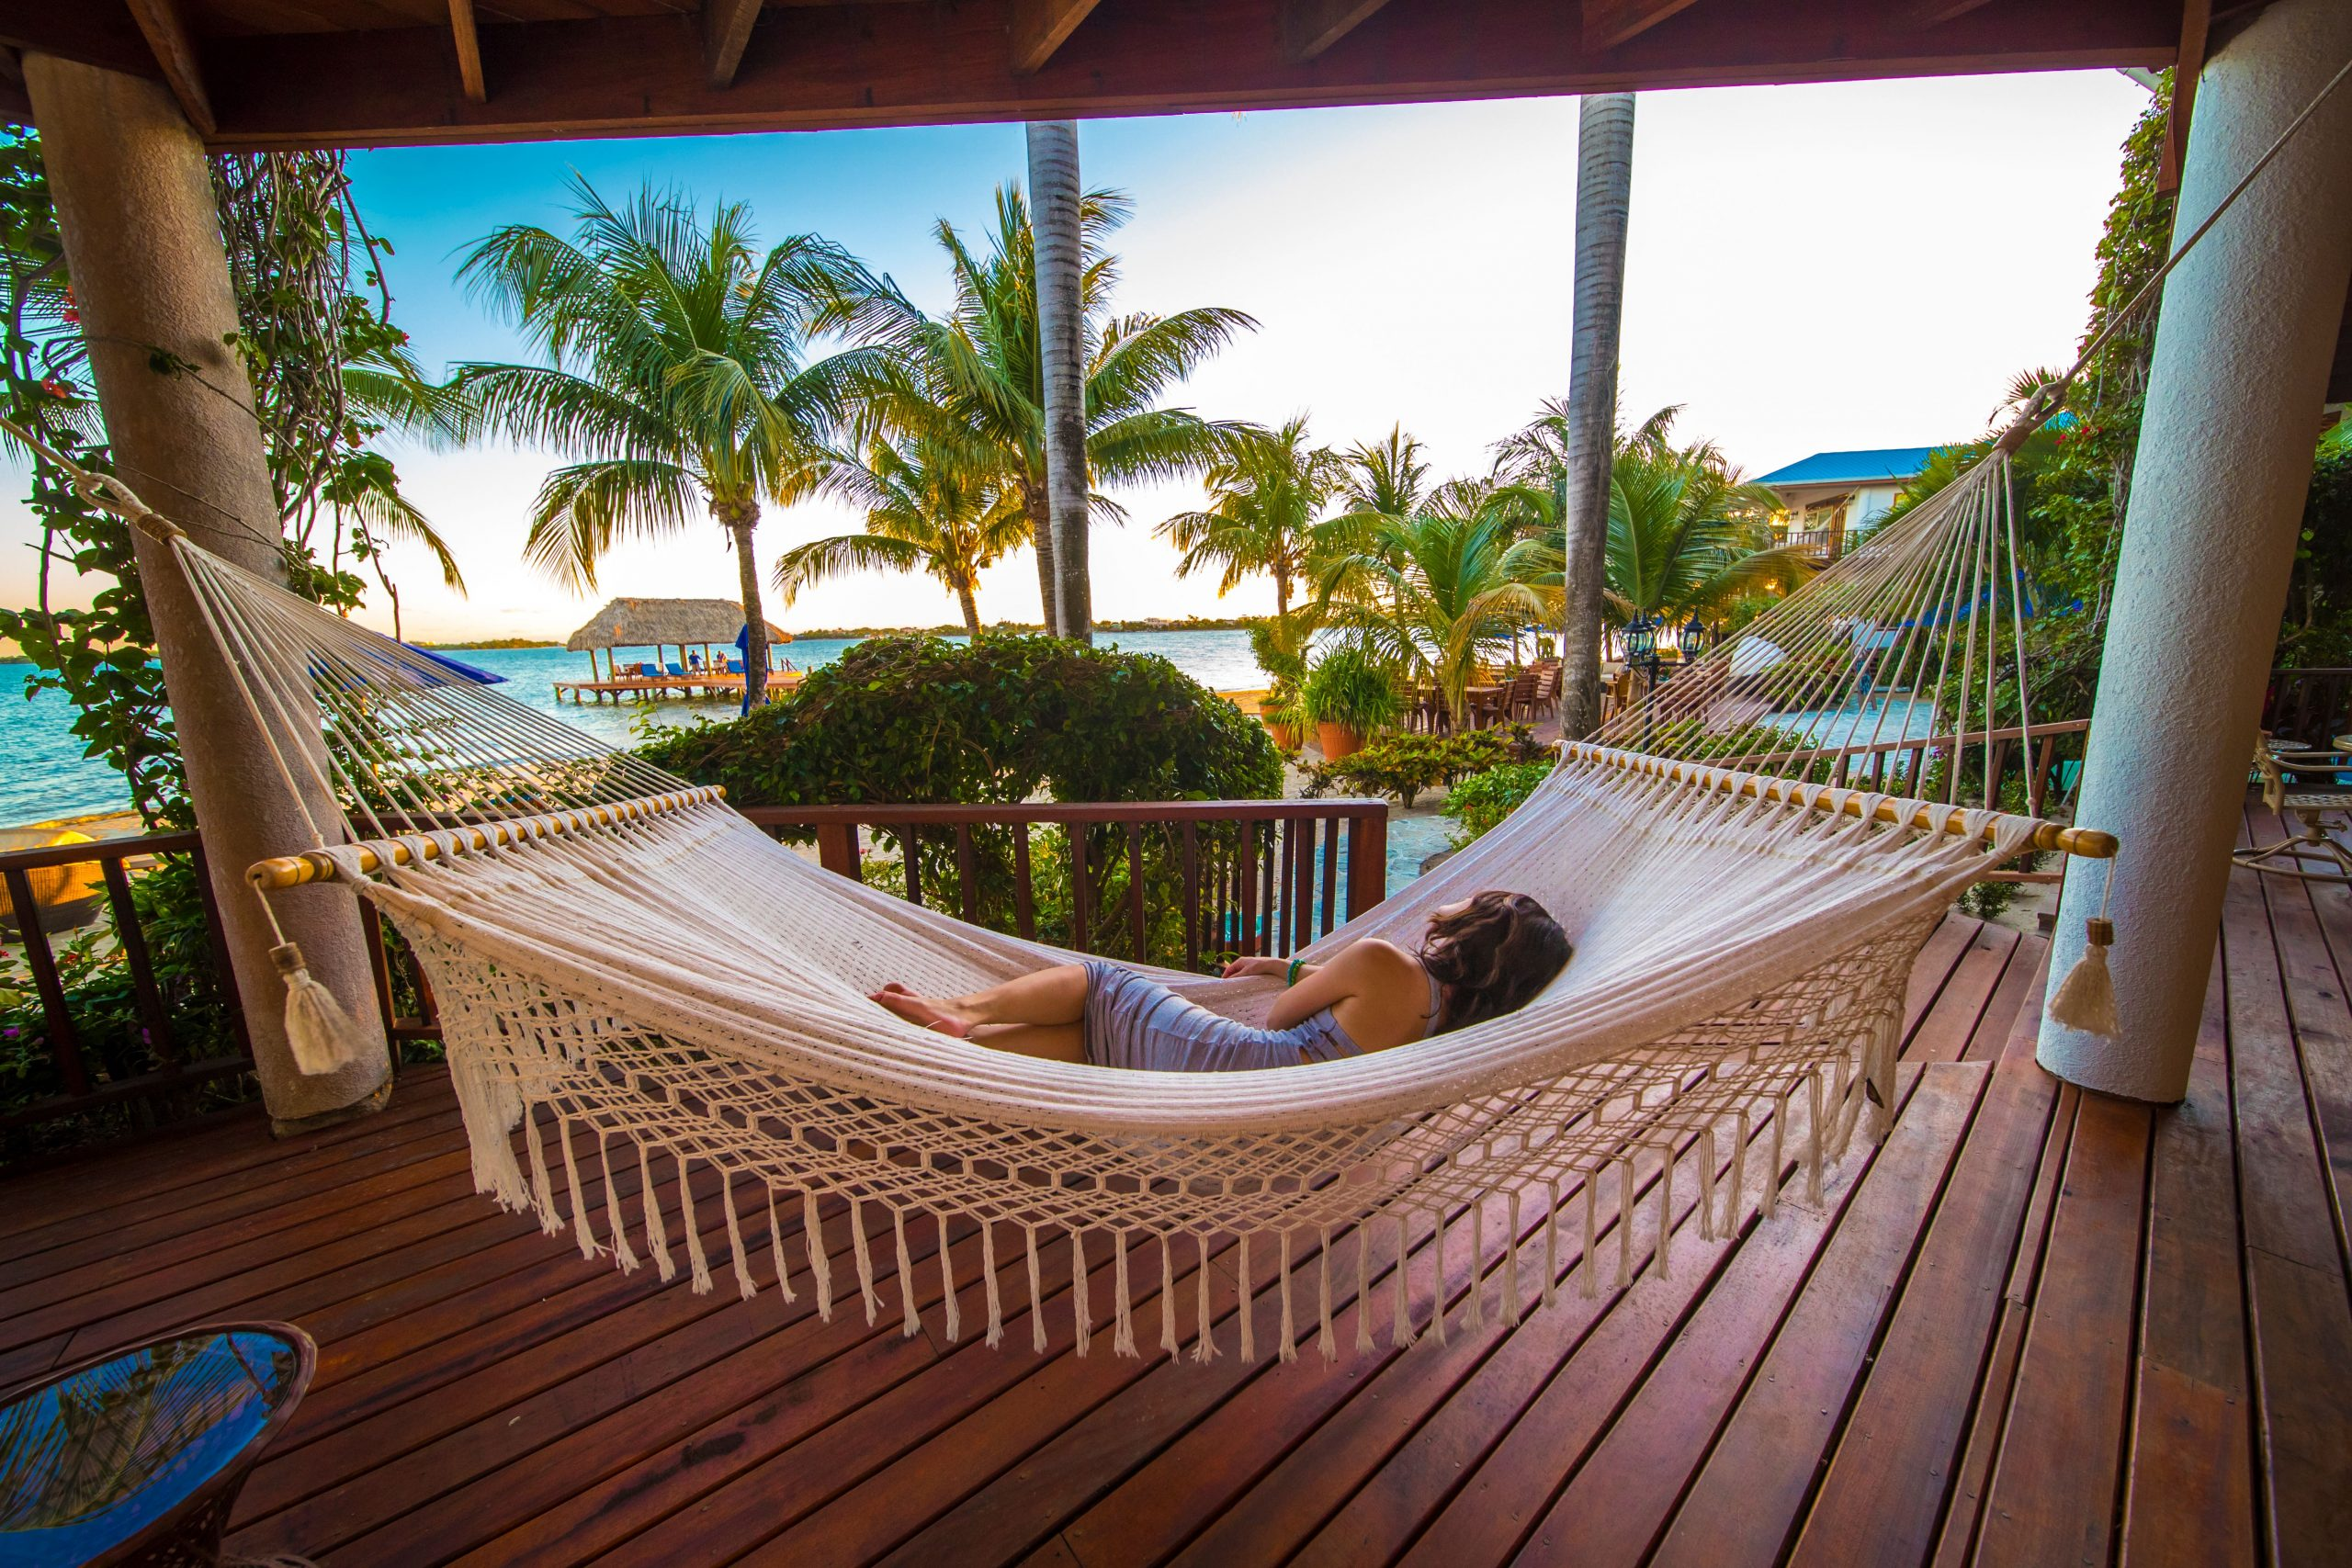 Vacation Home Rental Services and Amenities